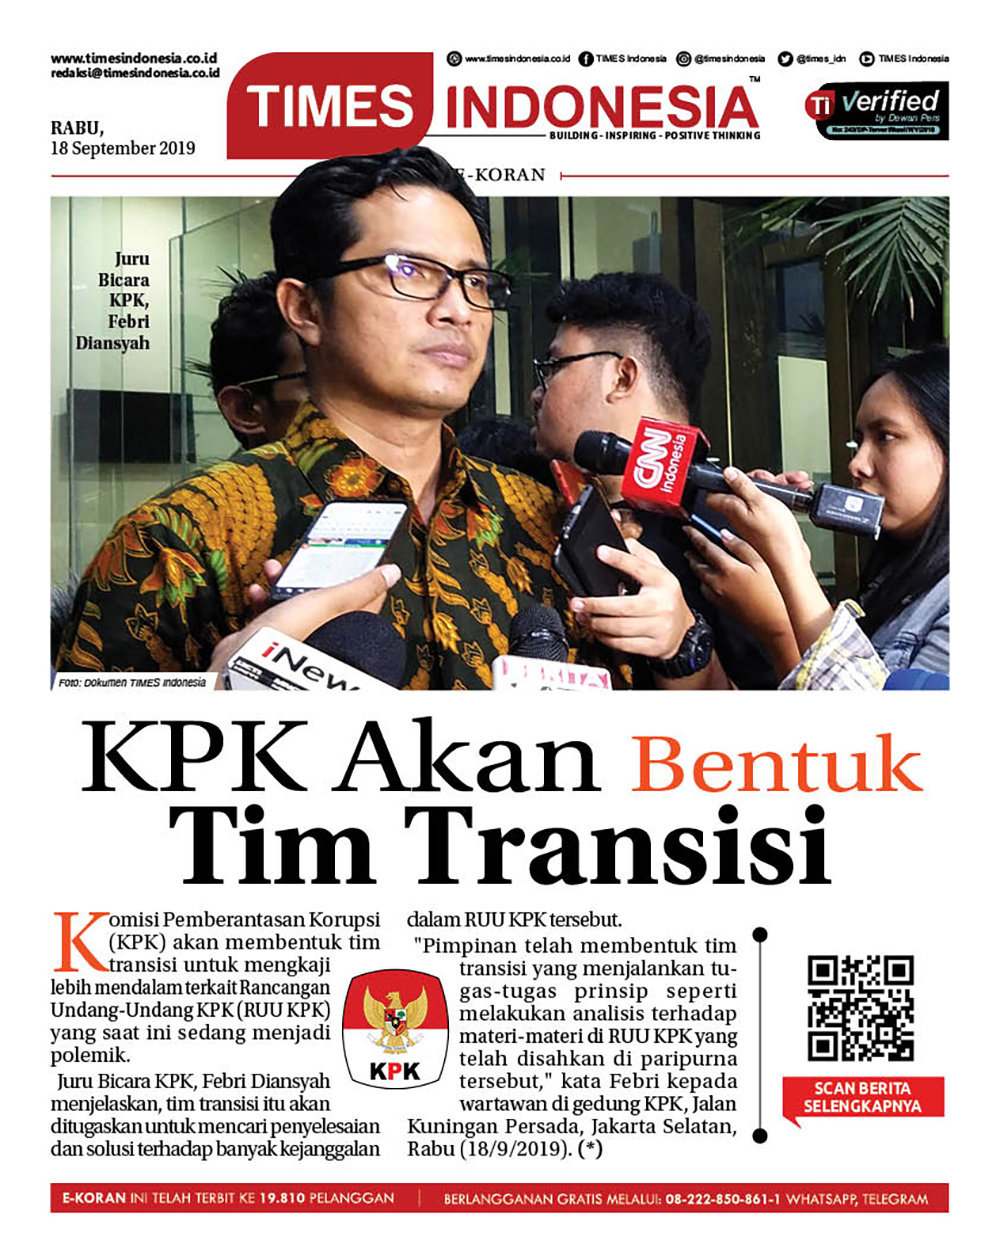 Edisi-Rabu-18-September-2019-13.jpg